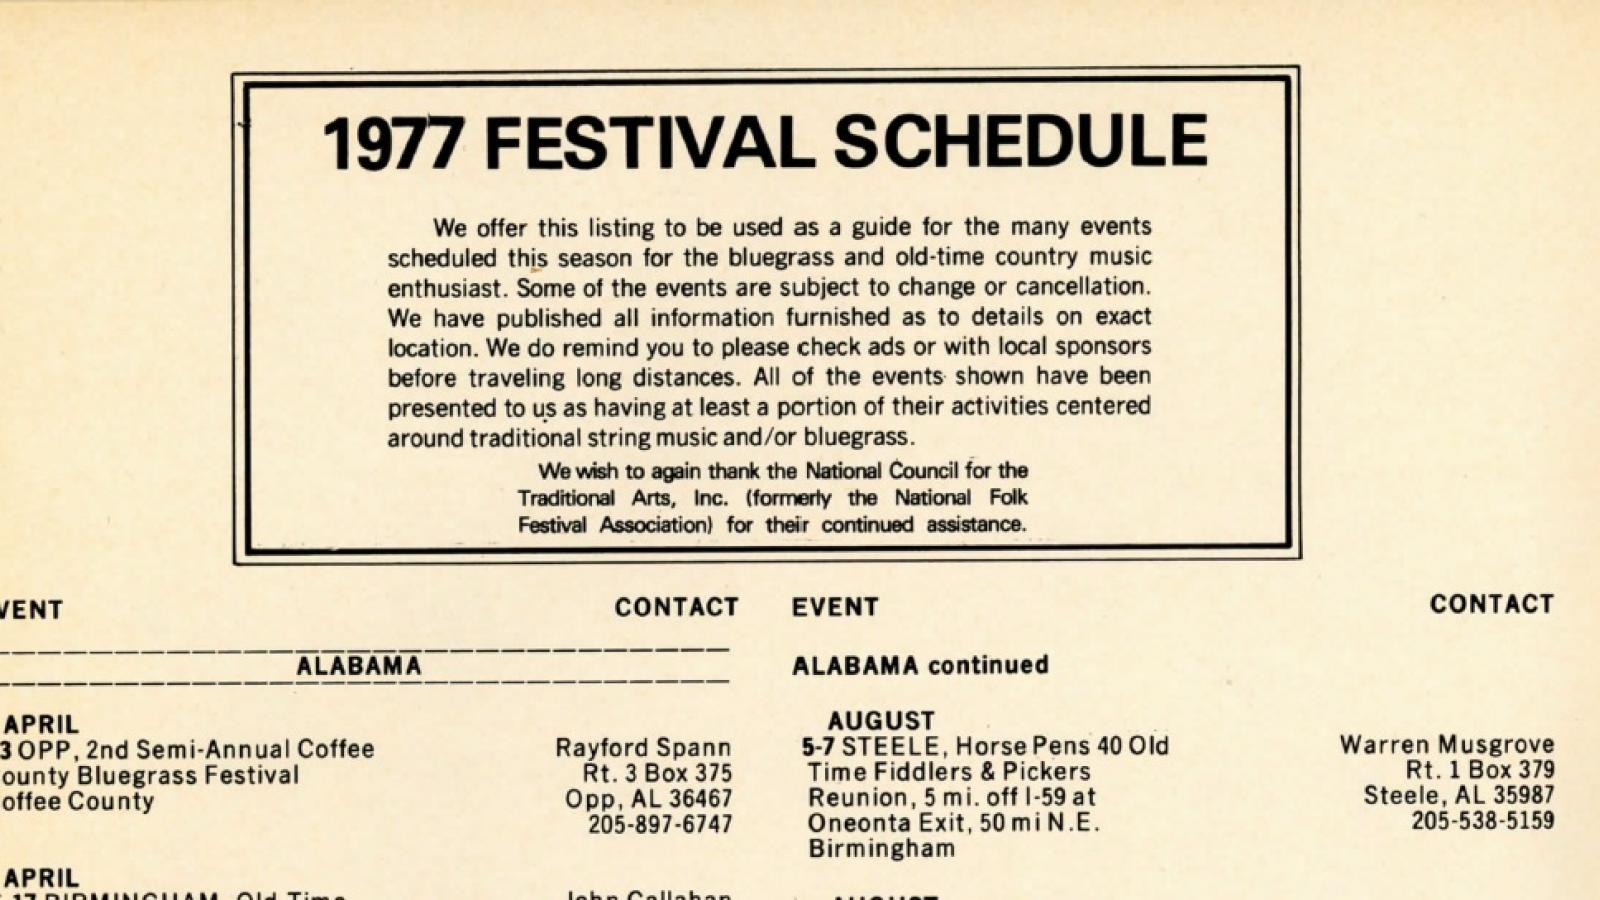 Listing of U.S. Bluegrass festivals in the spring and summer of 1977 in Bluegrass 77 magazine.